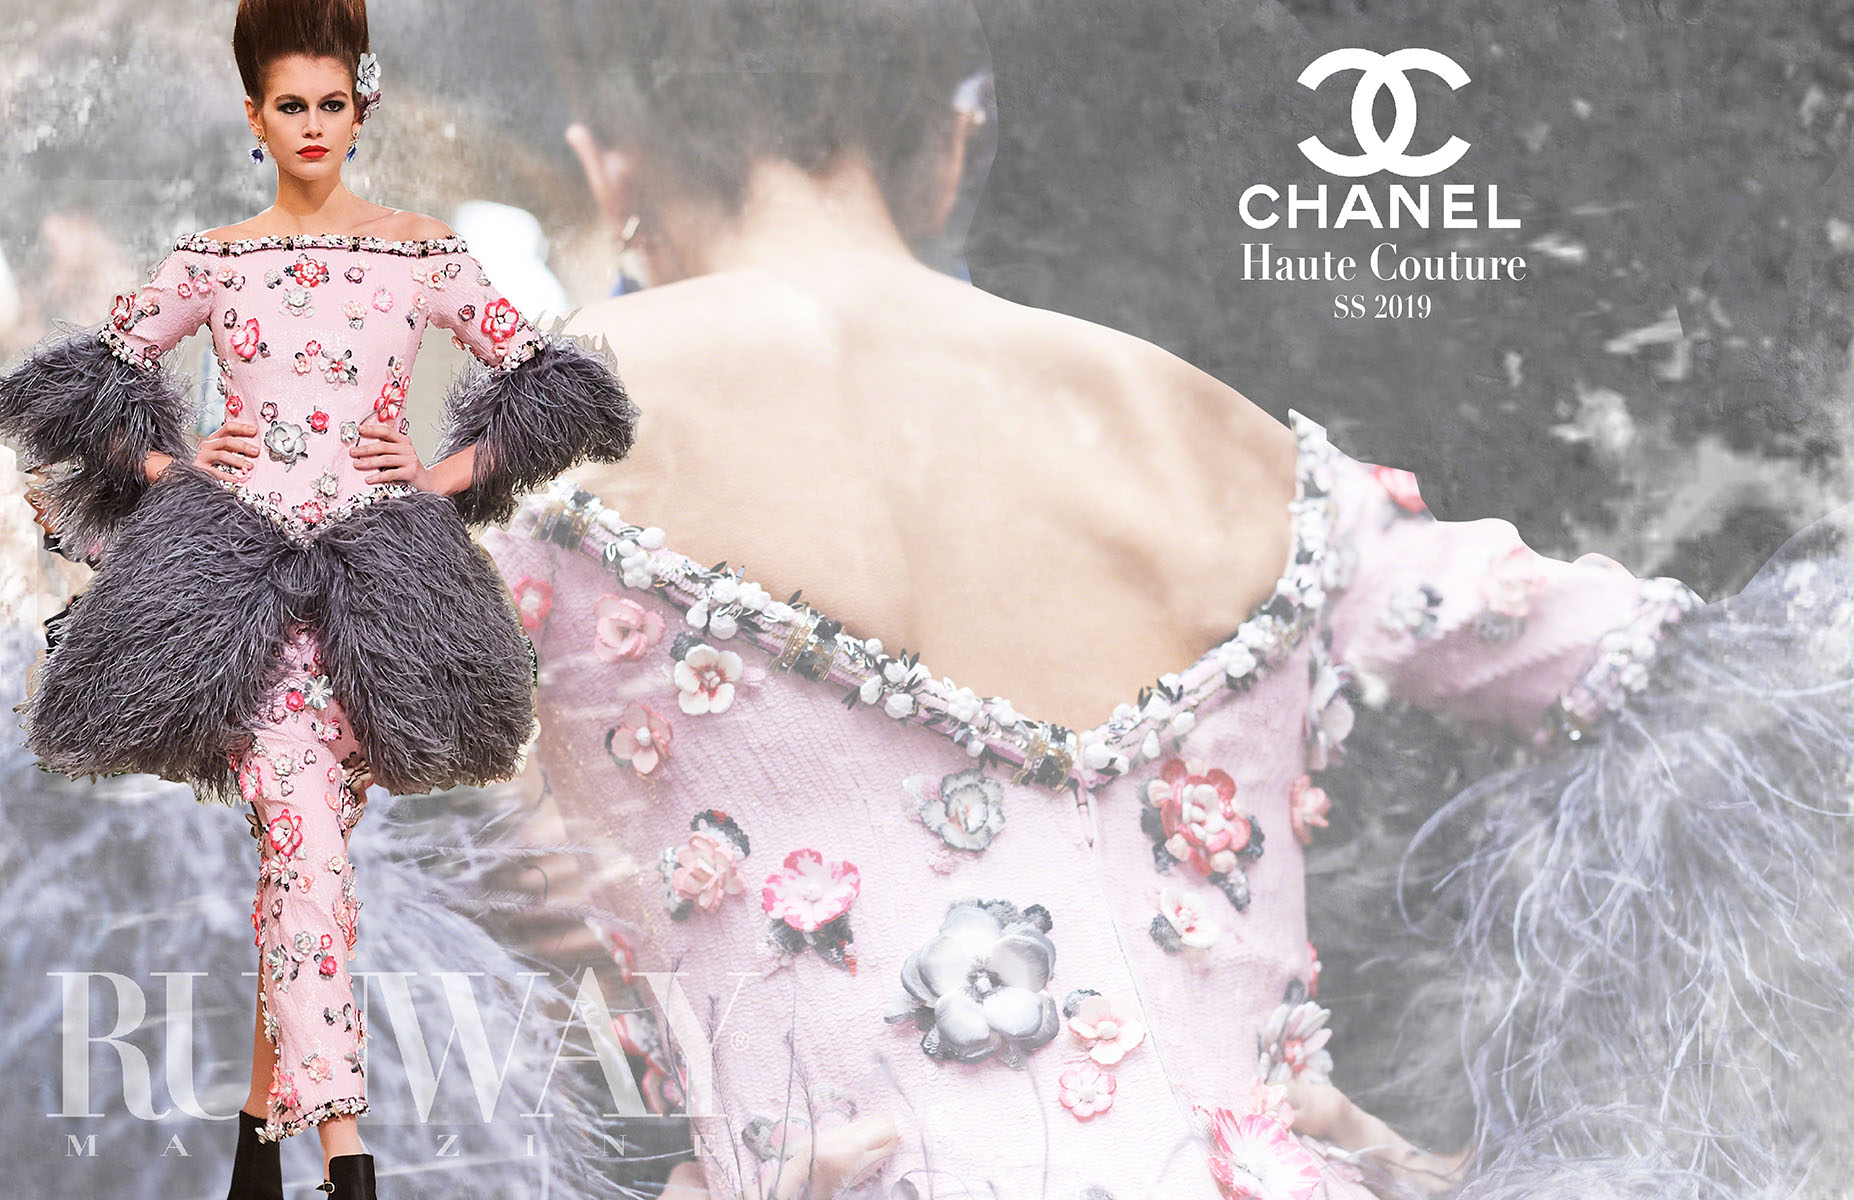 CHANEL Haute Couture Spring Summer 2019 by Runway Magazine